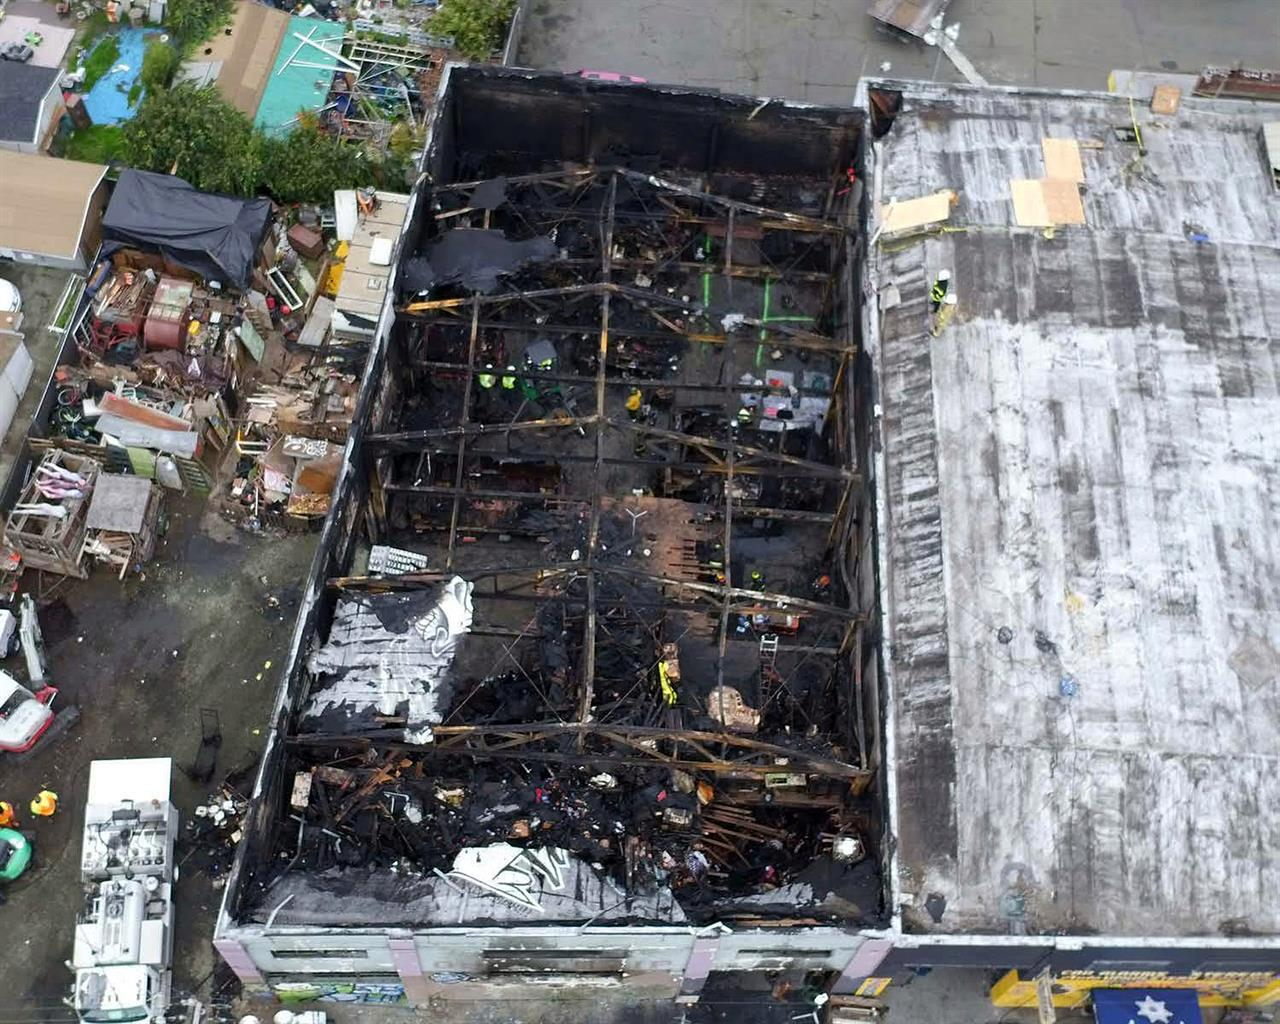 Defendant in fatal warehouse blaze 'not blaming anyone'